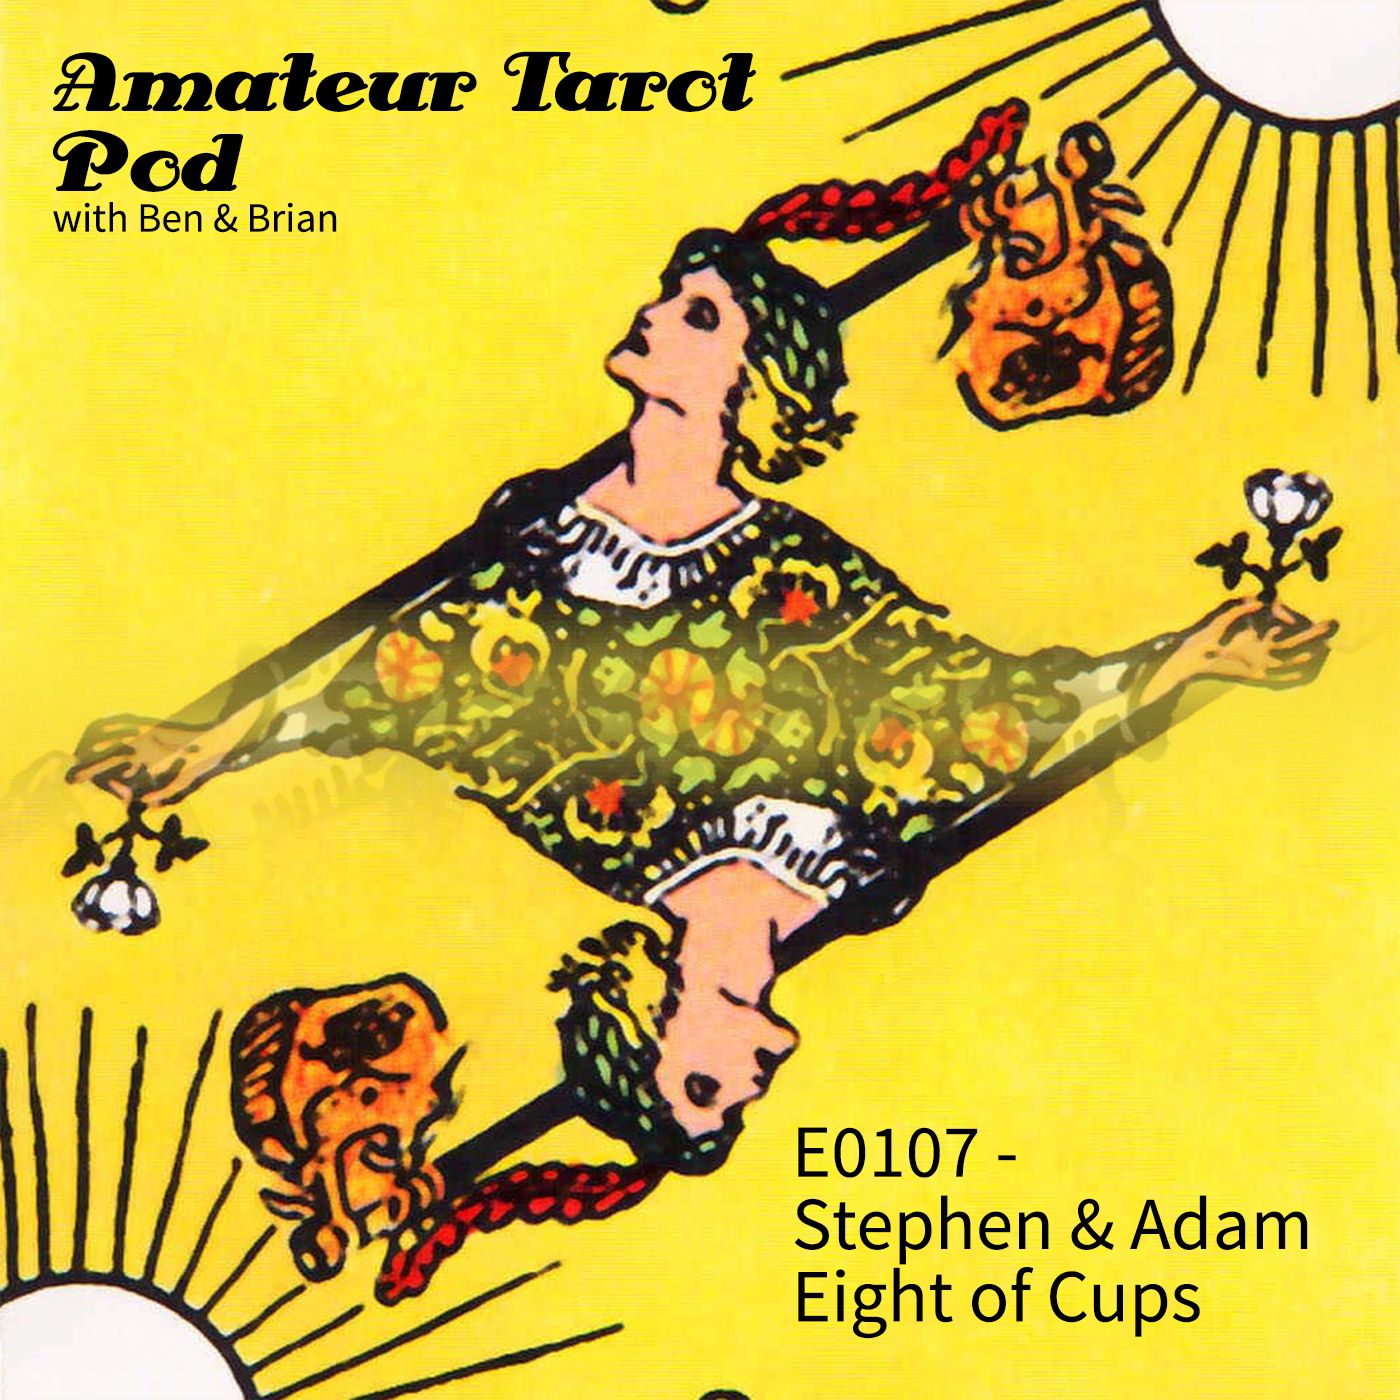 Amateur Tarot Pod: A Mystical Comedy Advice Show